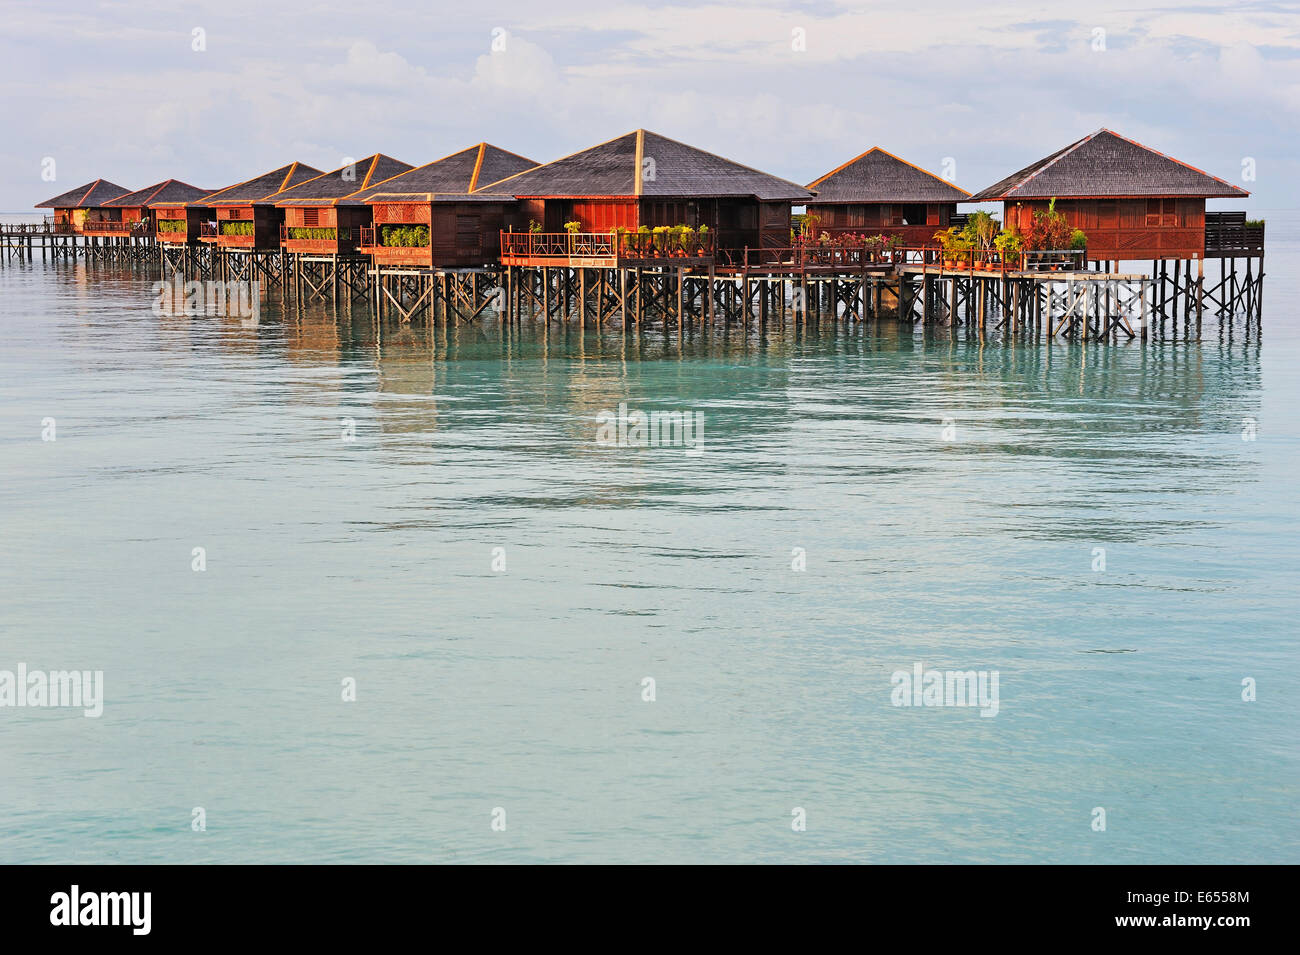 Bungalow vacation resort on lagoon, Island of Borneo, Sabah State, Malaysia, Southeast Asia - Stock Image